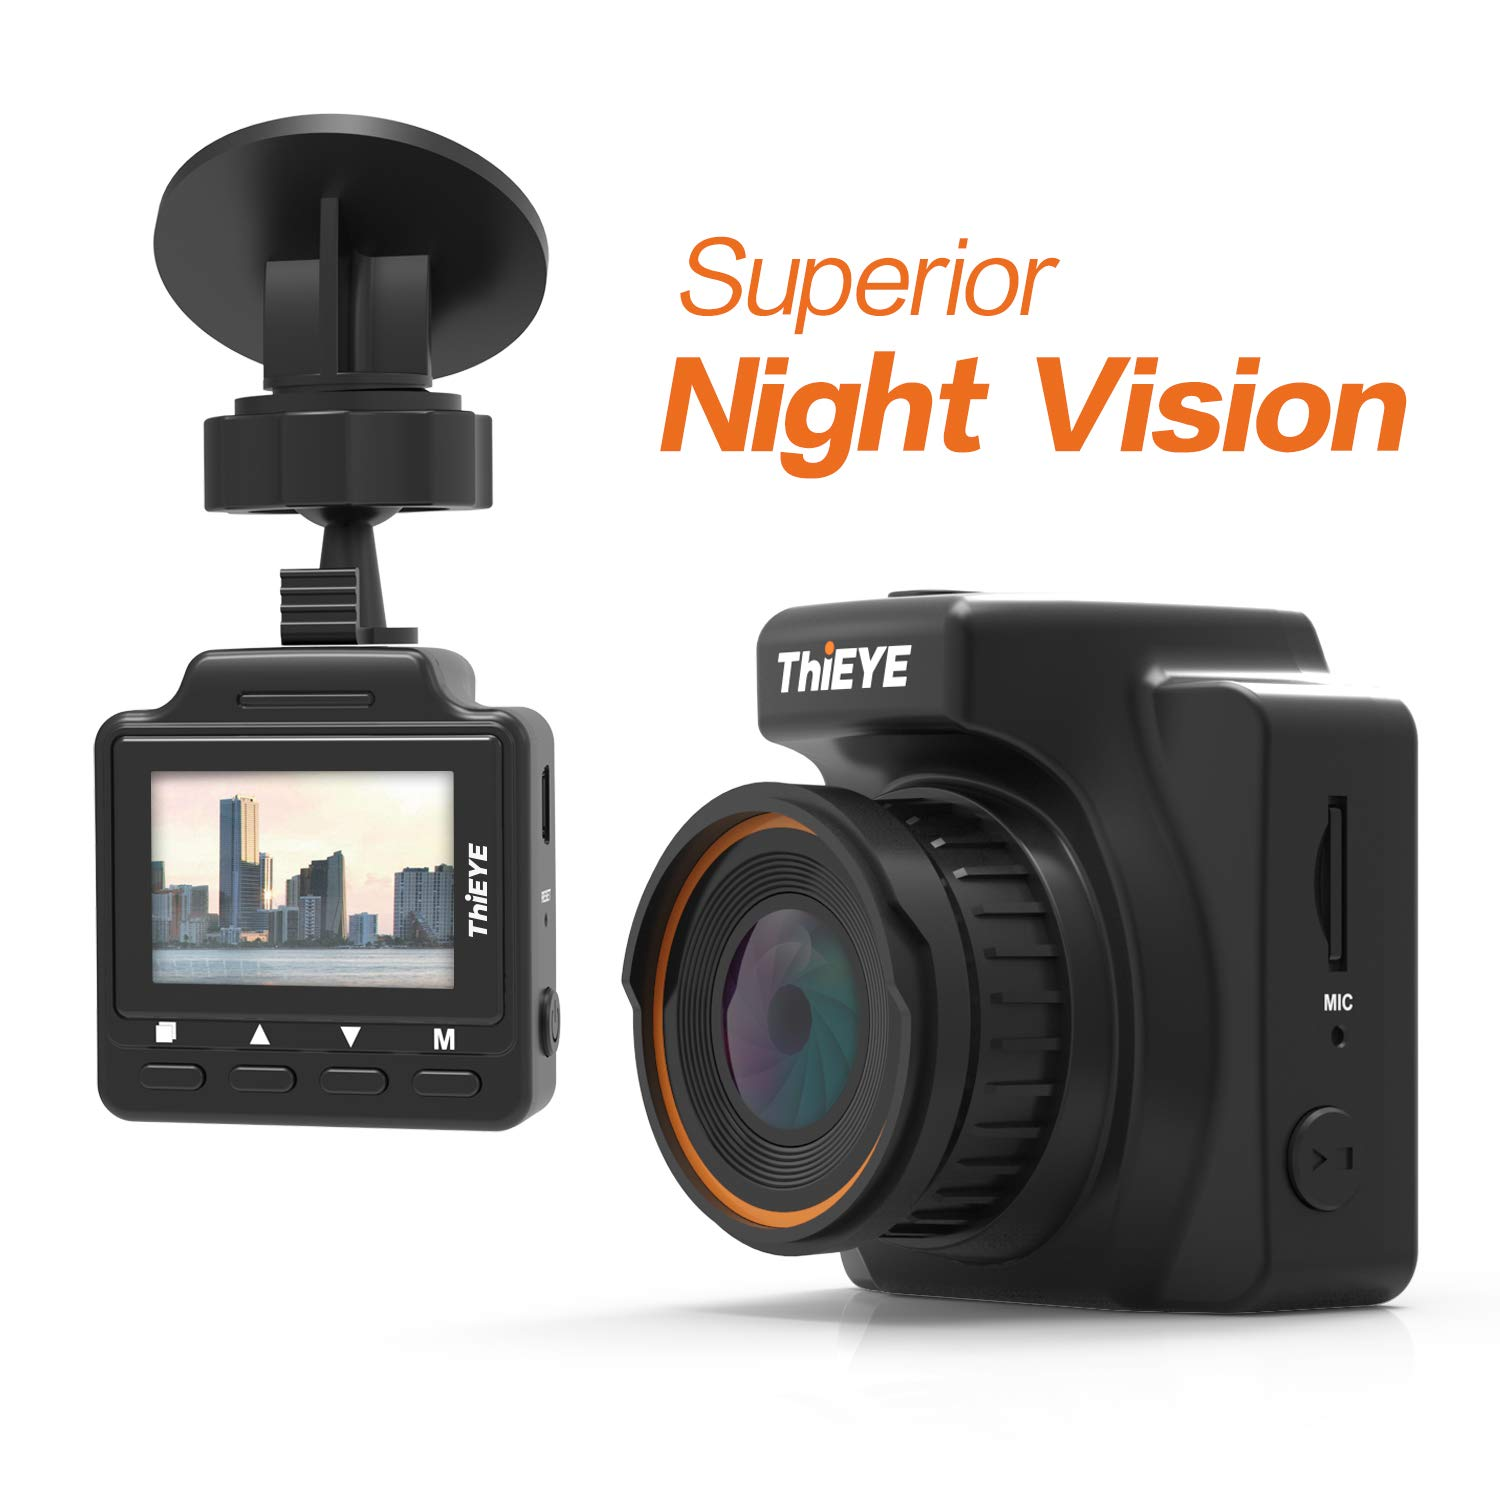 Dash Cam,Night Vision ThiEYE Dashboard Camera Small Recorderwith Full HD1296P Safeel ONE Parking Monitor Built-in G-Sensor Loop Recording